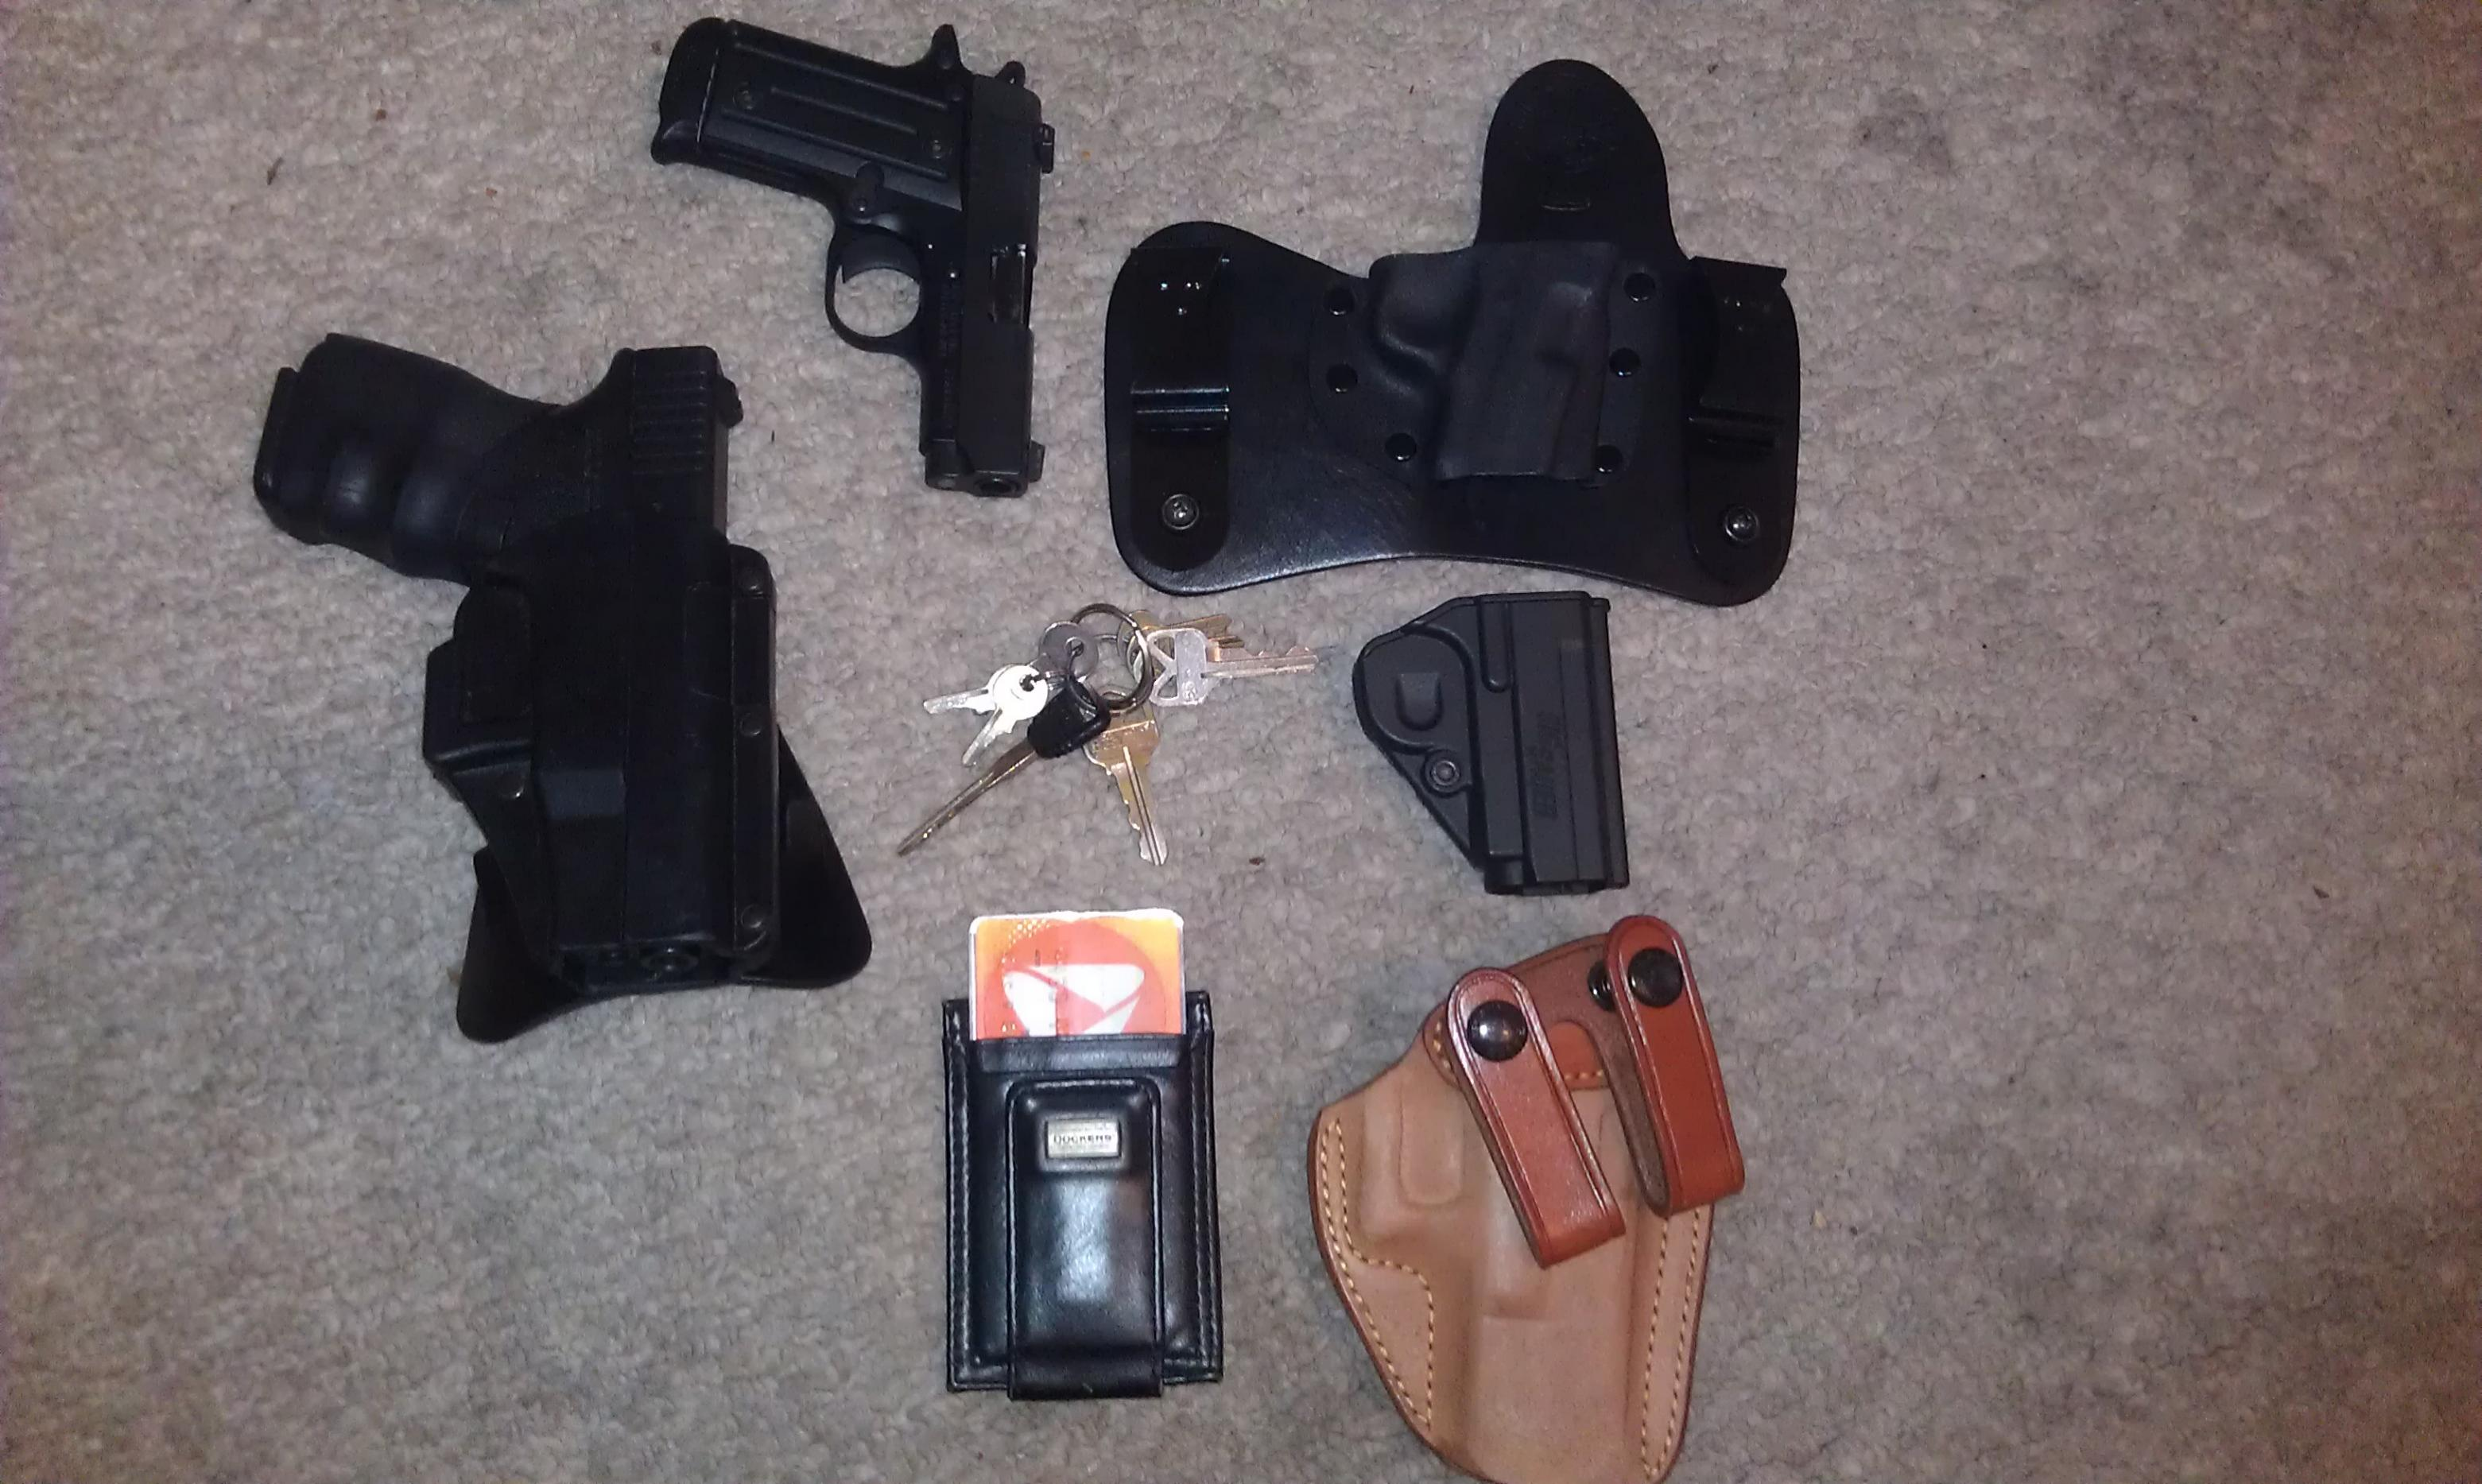 EDC Kits - Post'em up if you got a picture-imag0160.jpg